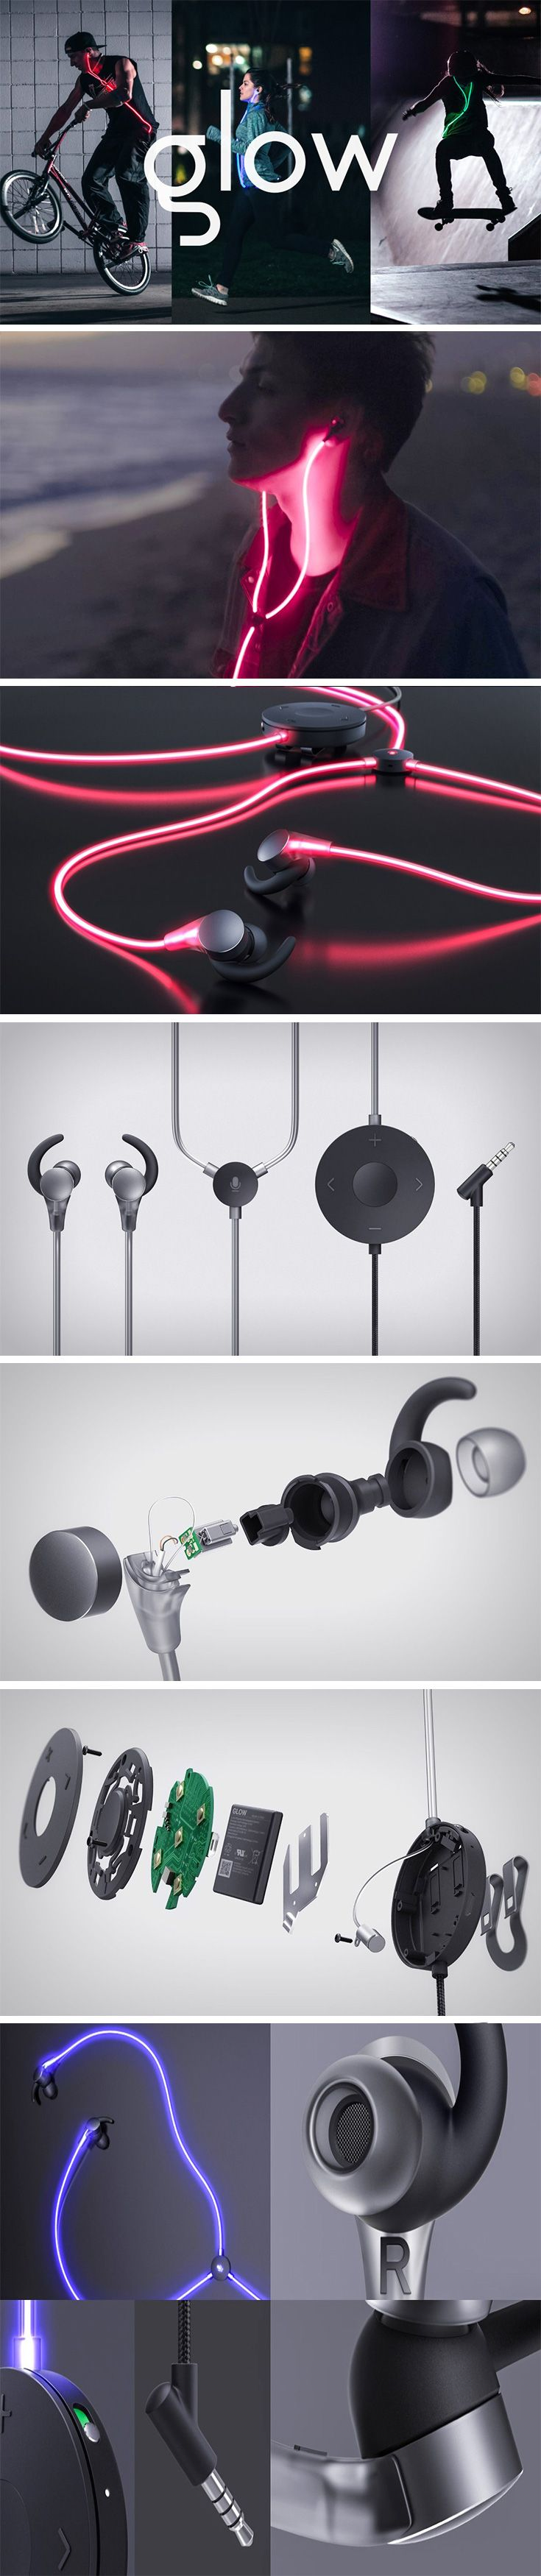 "The Glow headphones bring the sensory element of sight to the music listening experience. Much like the way an equalizer helps people ""see"" music, the Glow earphones contain special cables that light up and pulsate with your audio."